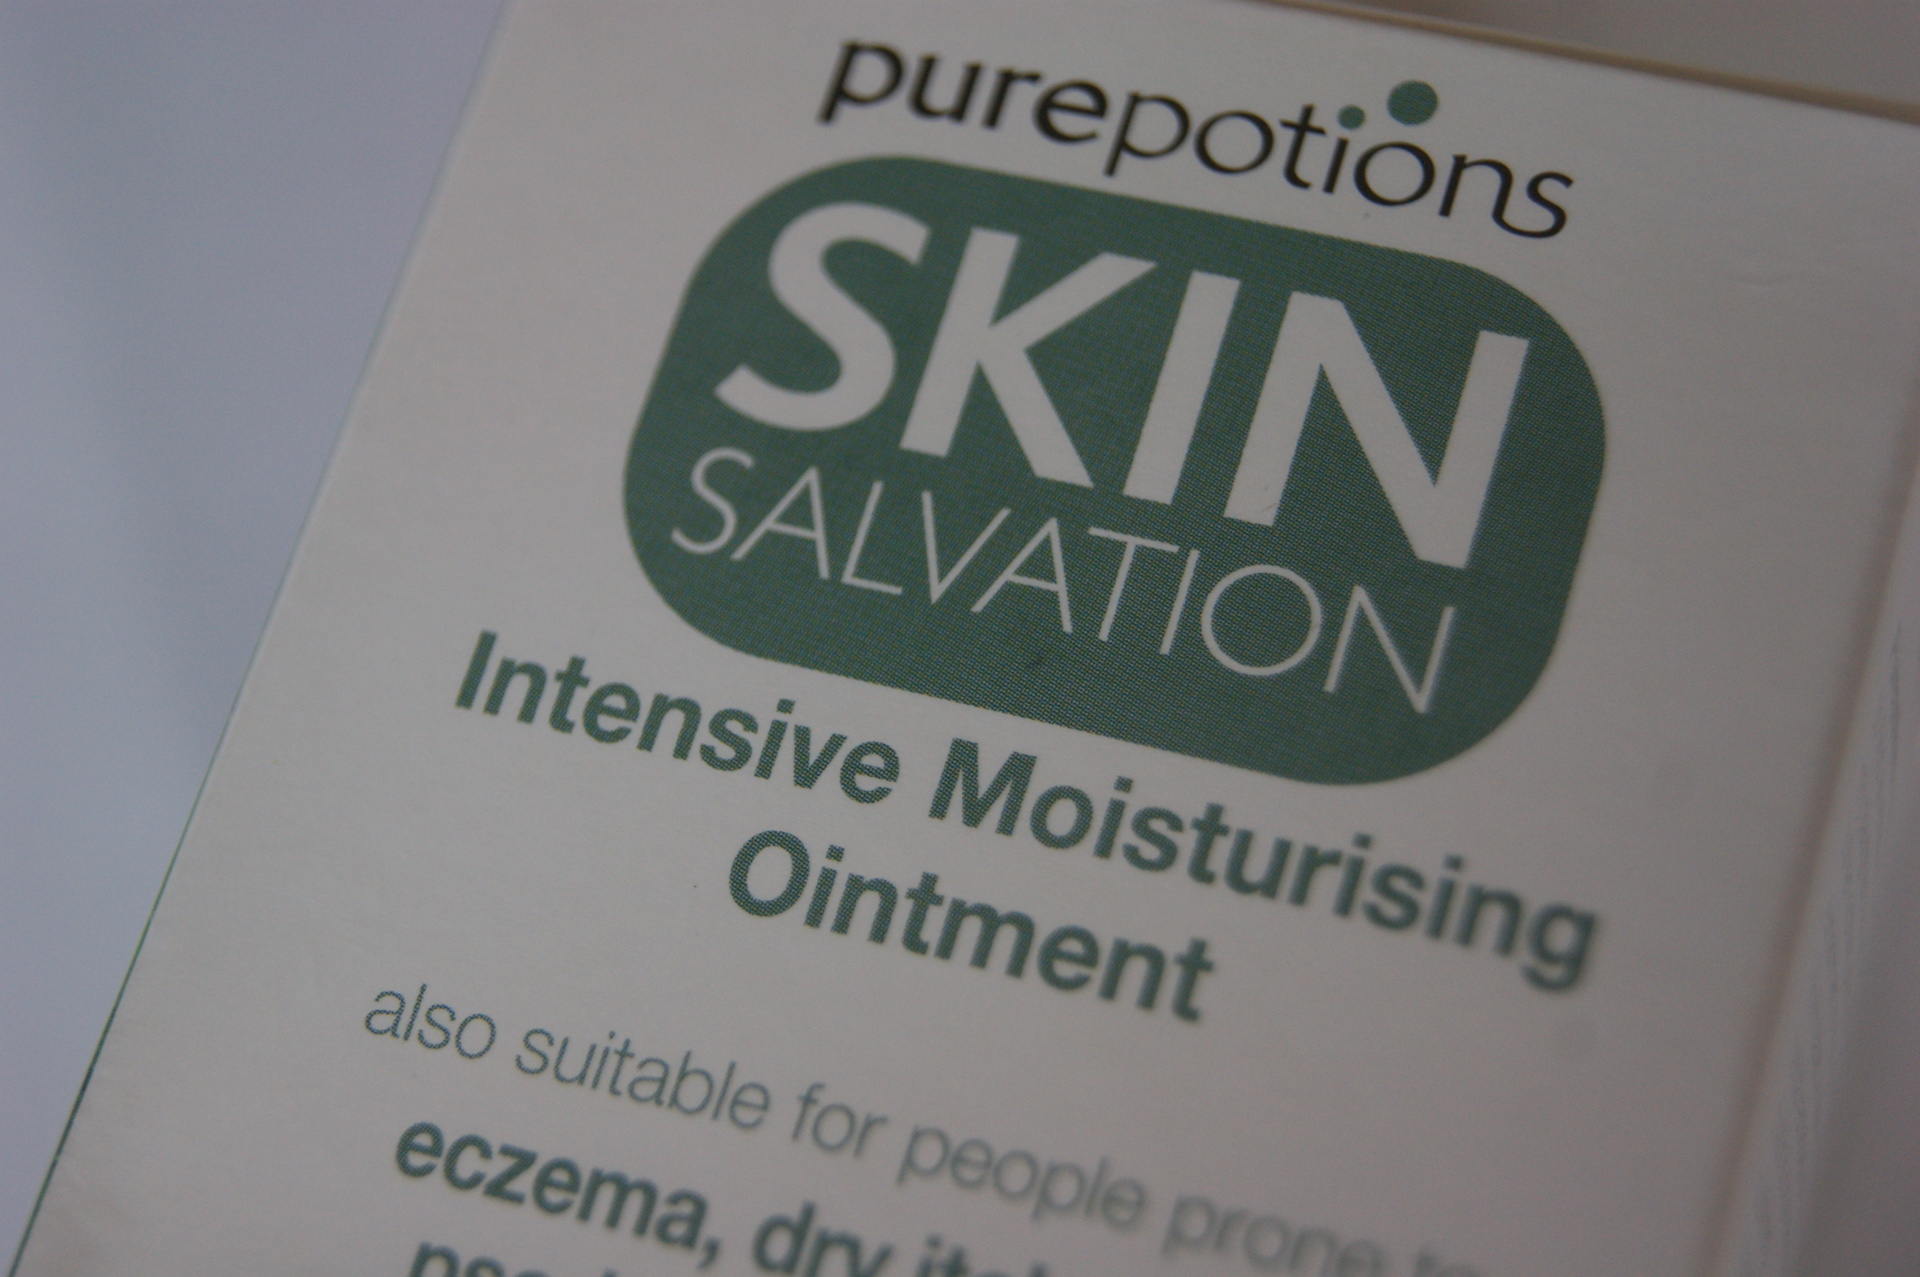 Pure Potions - Intensive Moisturising Ointment